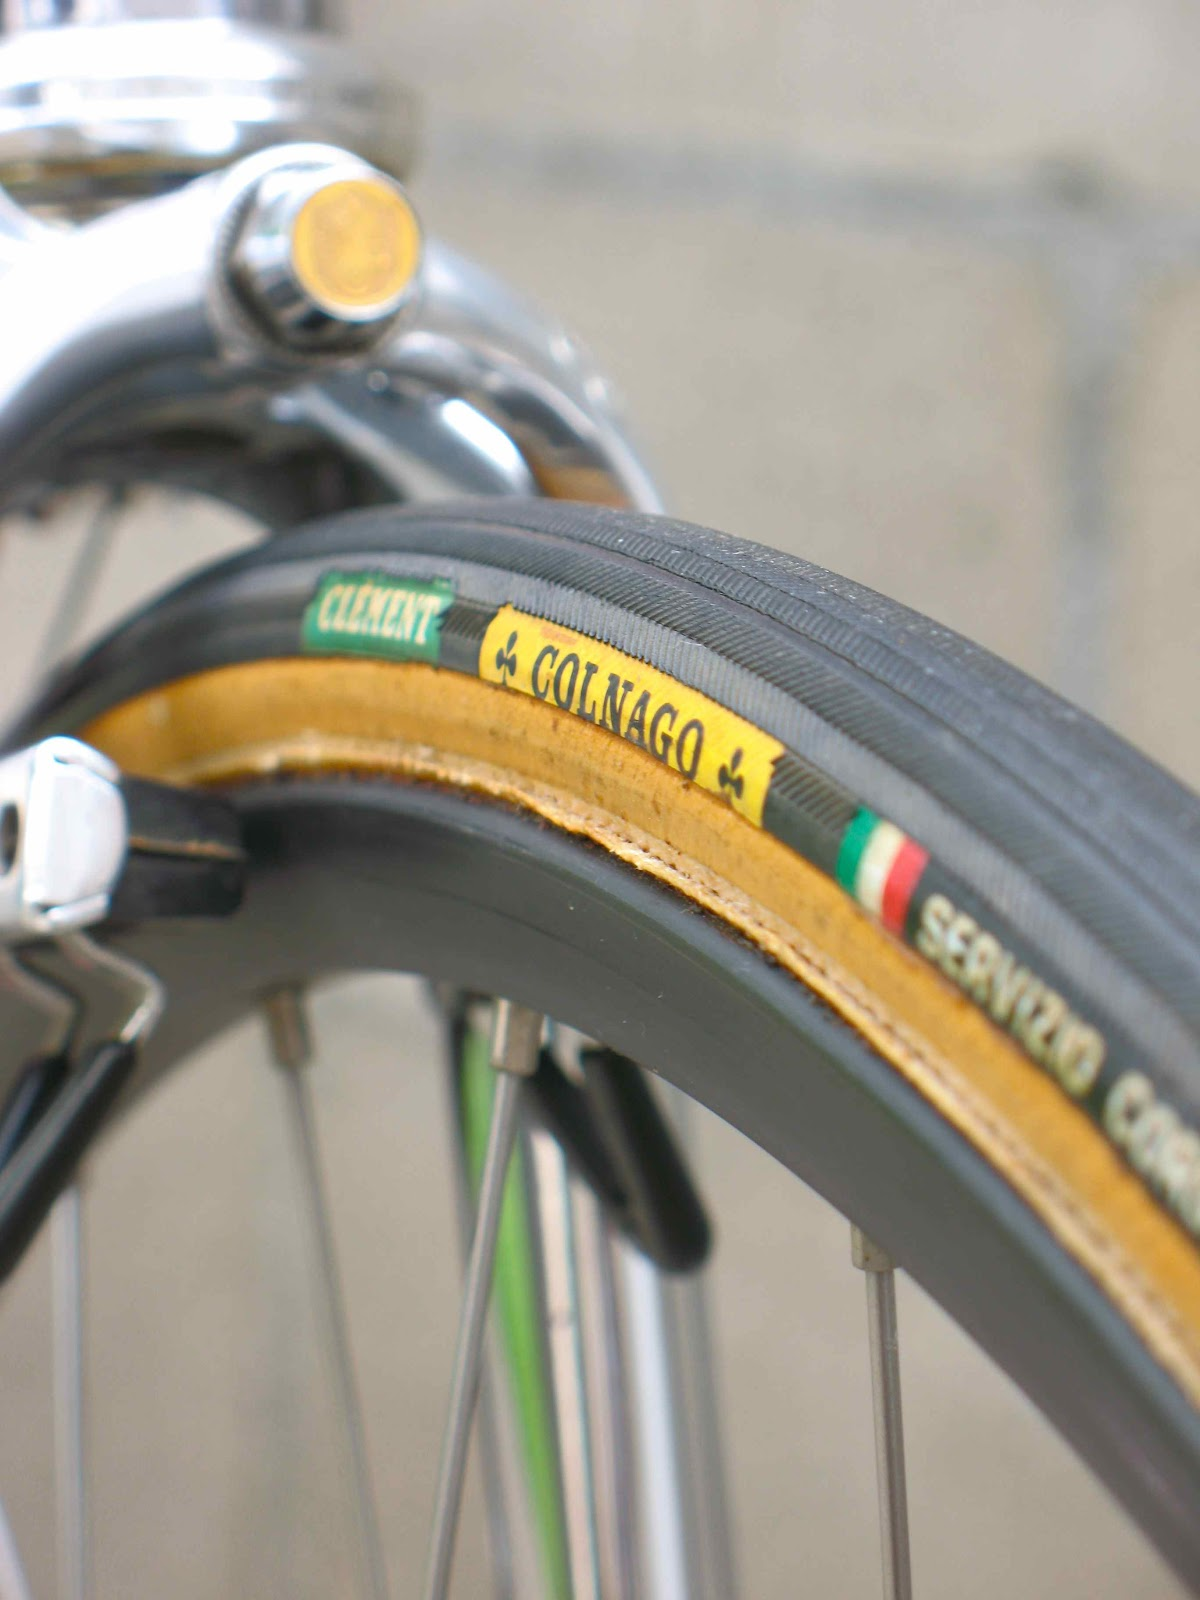 Cambiago Italy  city photos gallery : campagnolo delta brakes: Thirty years ago in Cambiago, Italy.